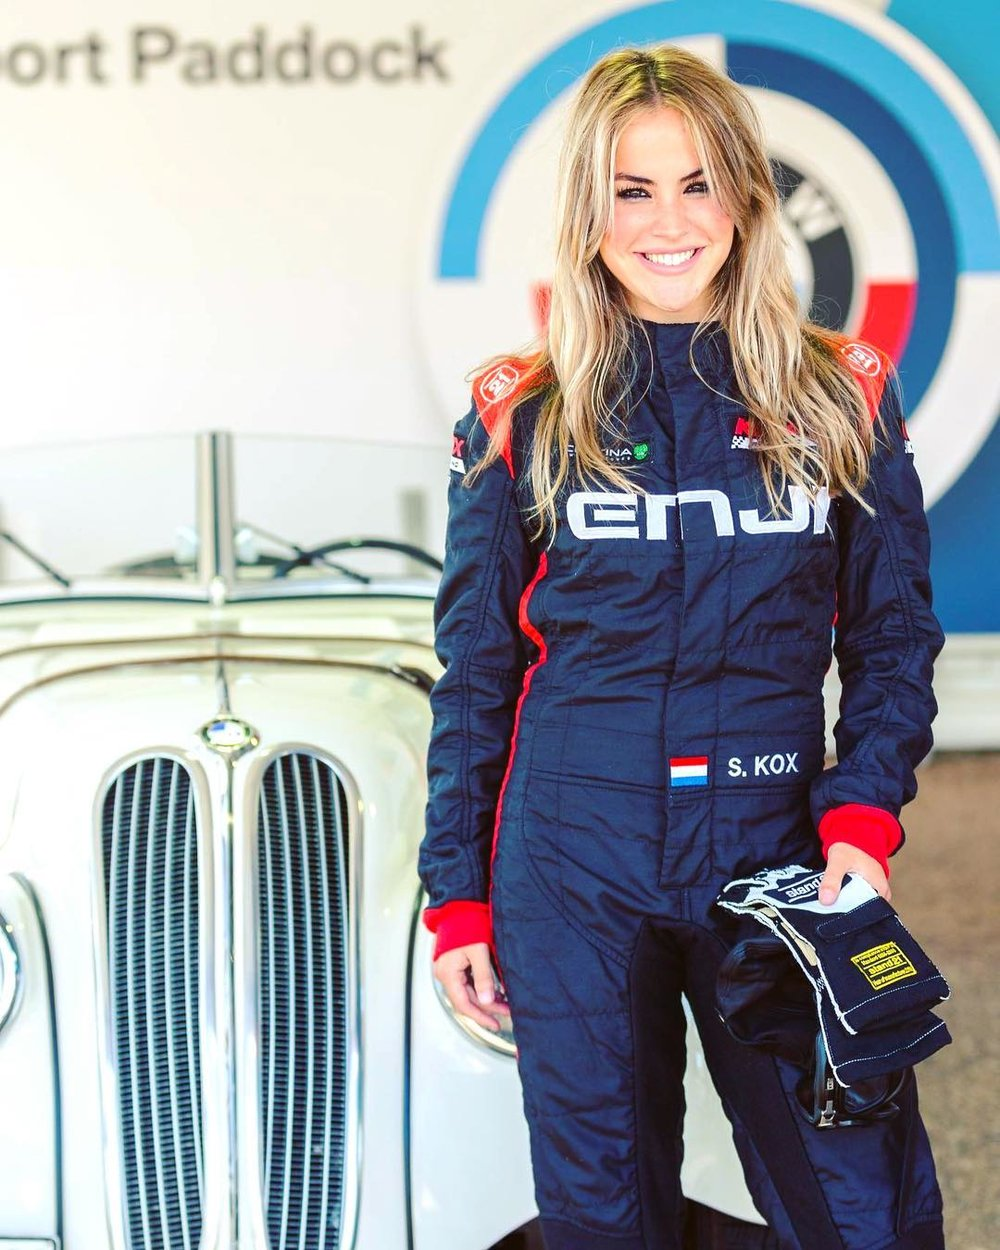 Stephane Kox poses in front of a vintage car in full modern racing gear, holding her gloves in her left hand.